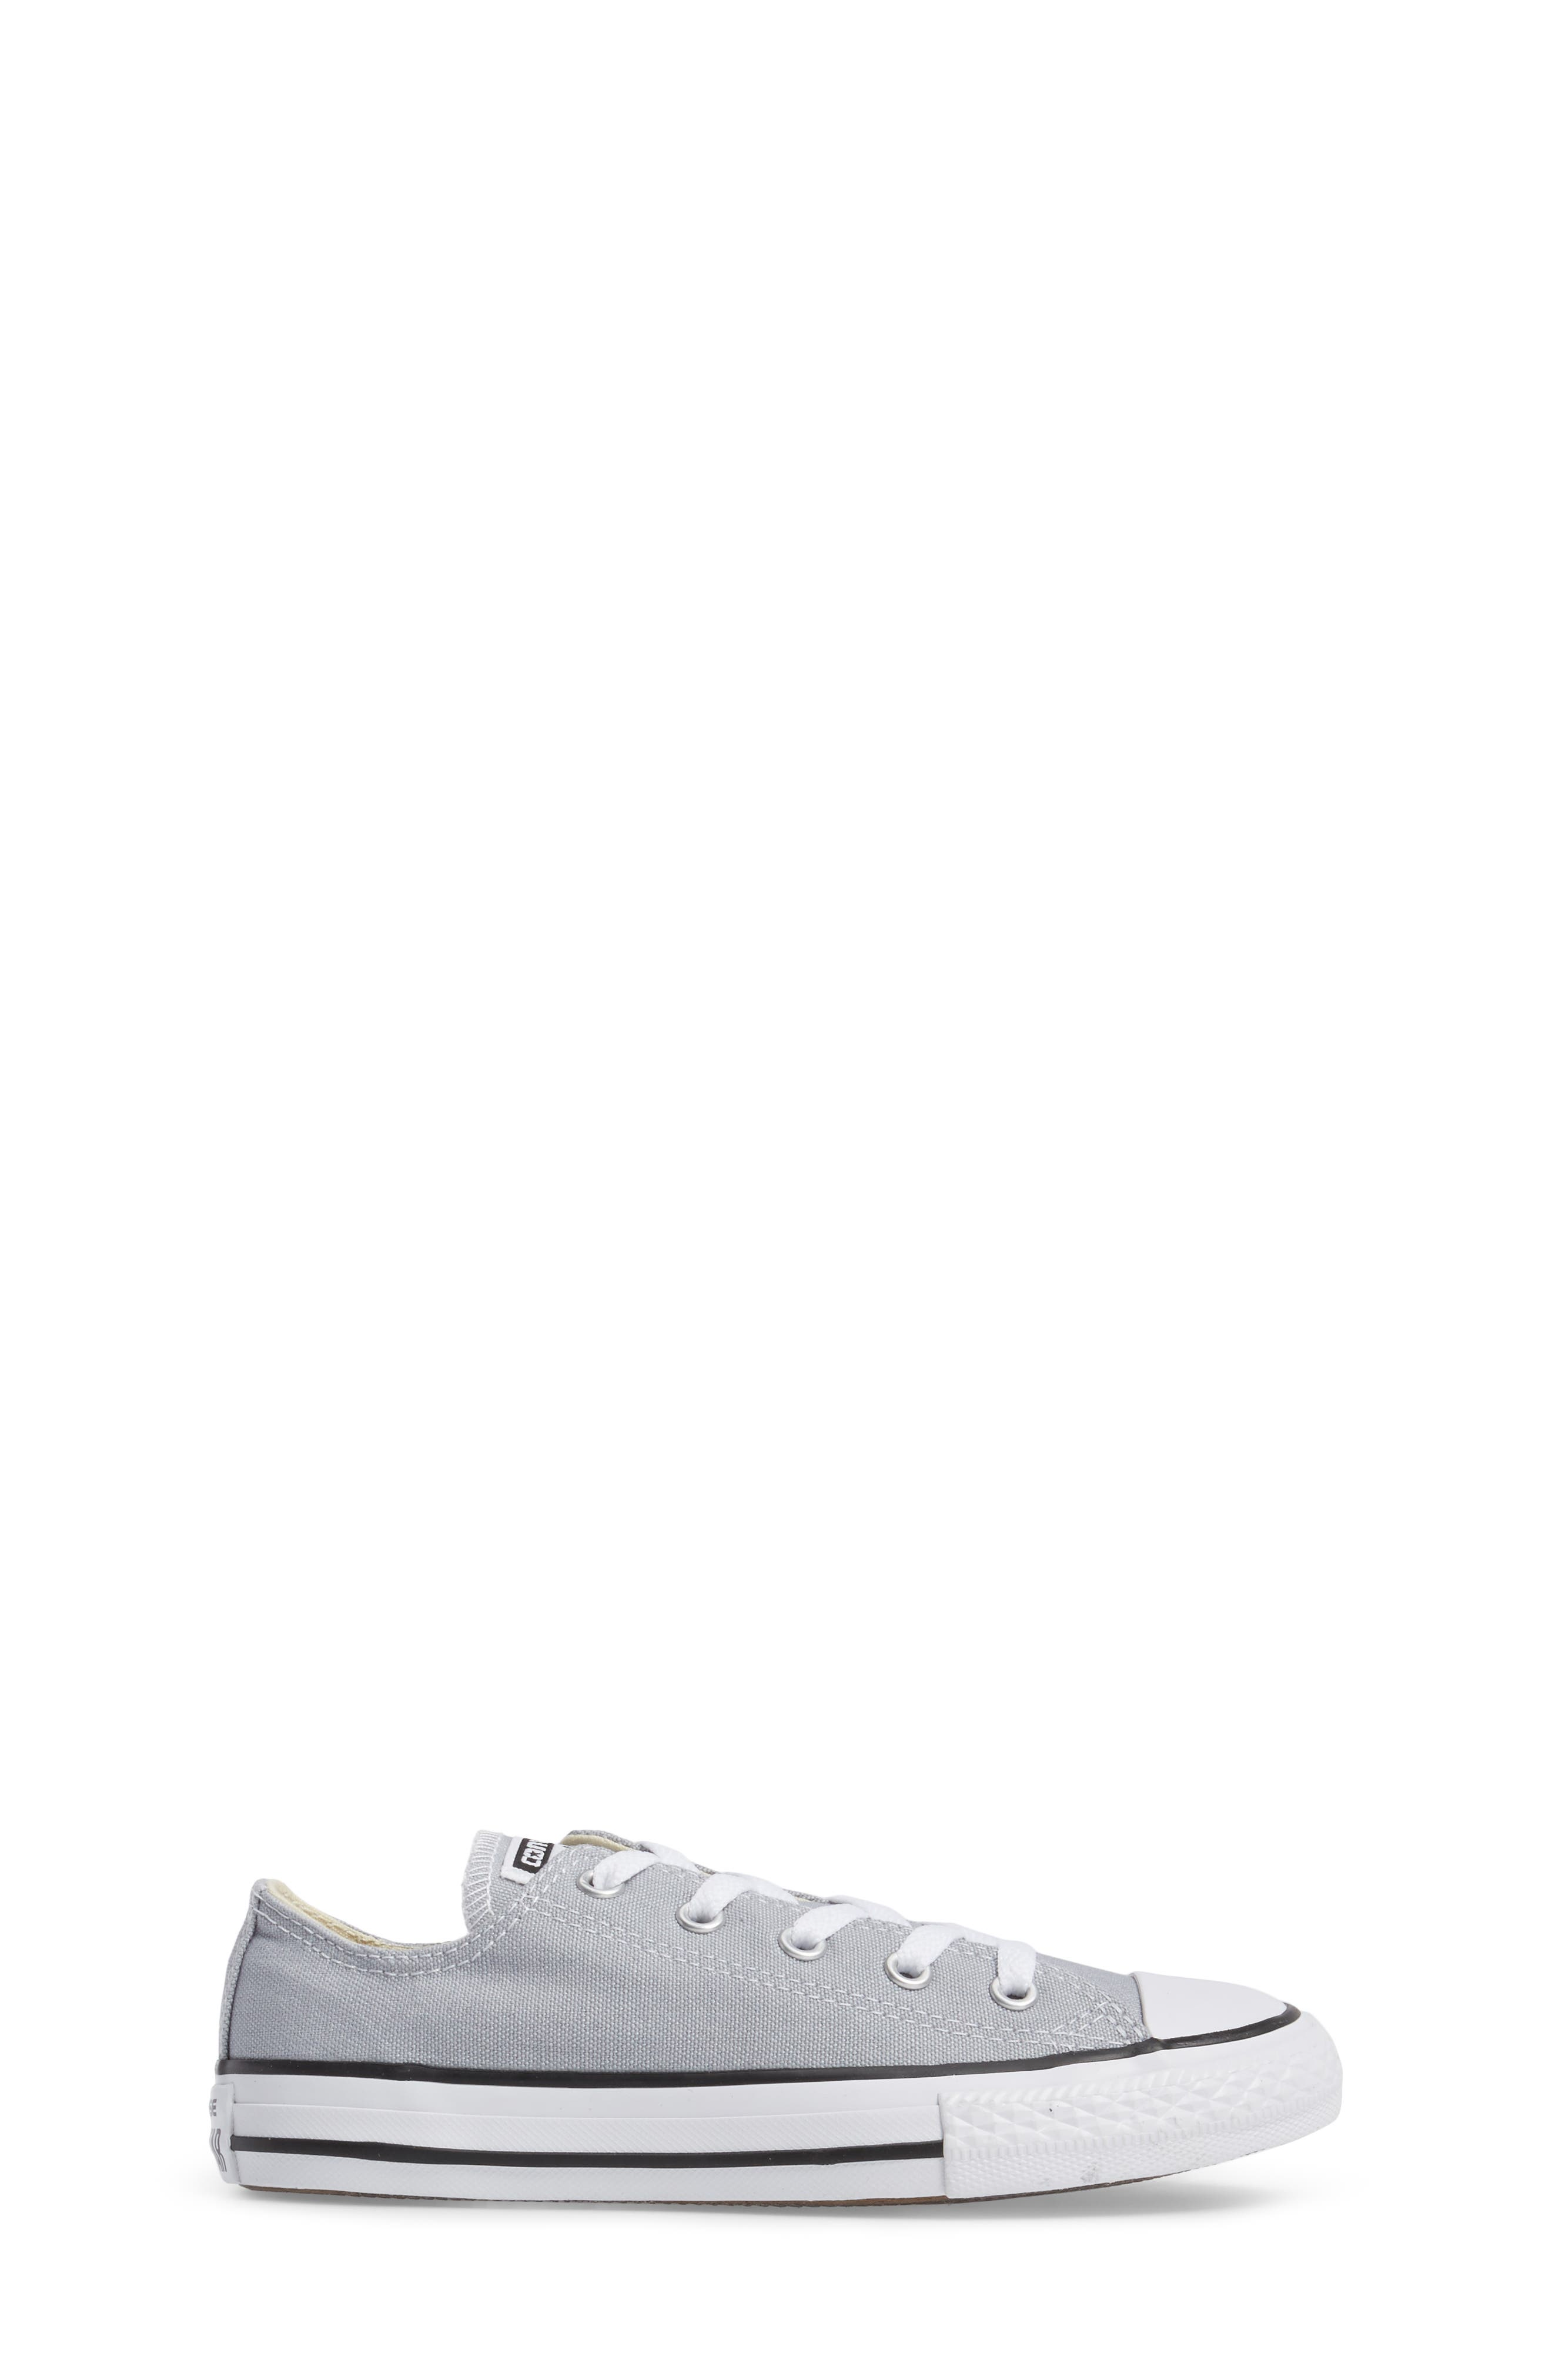 Chuck Taylor<sup>®</sup> All Star<sup>®</sup> 'Ox' Low Top Sneaker,                             Alternate thumbnail 3, color,                             097